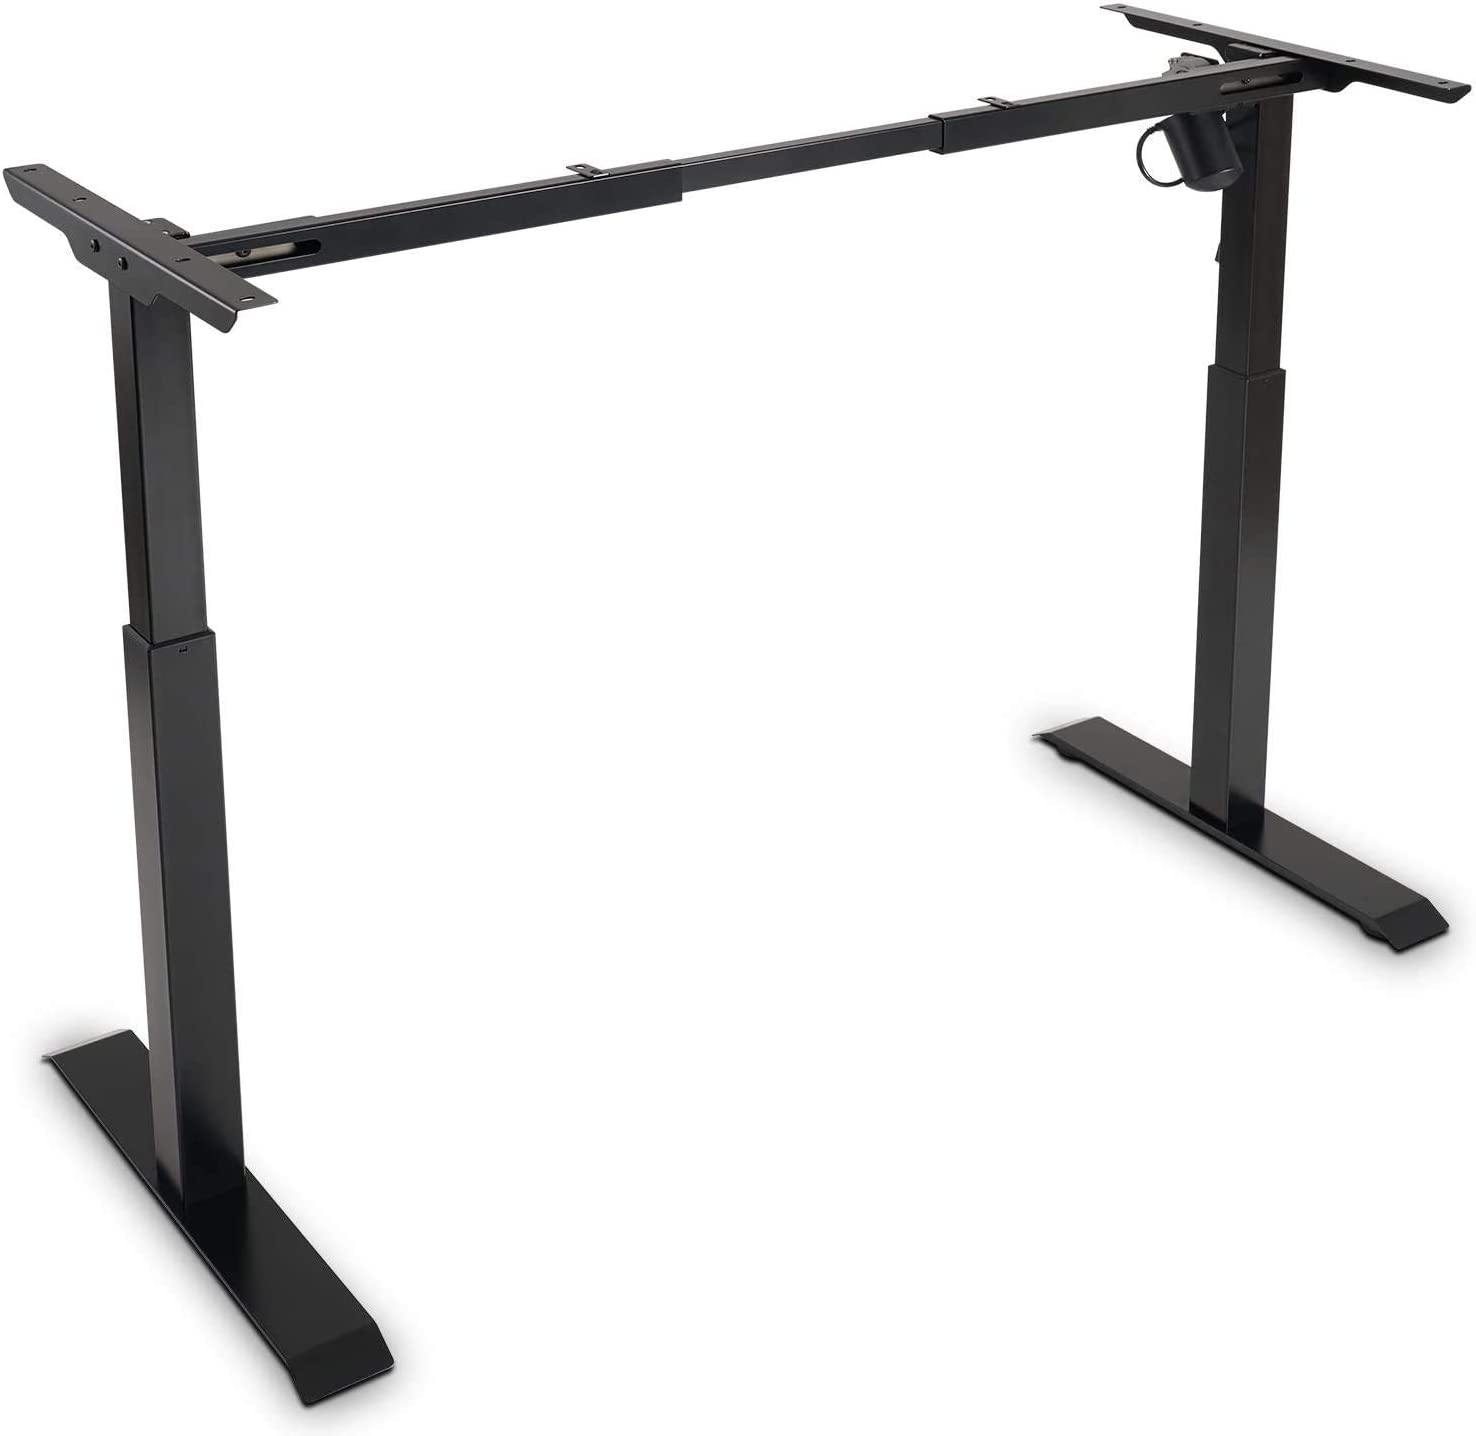 Deal of the week: Electric Stand up Desk Frame